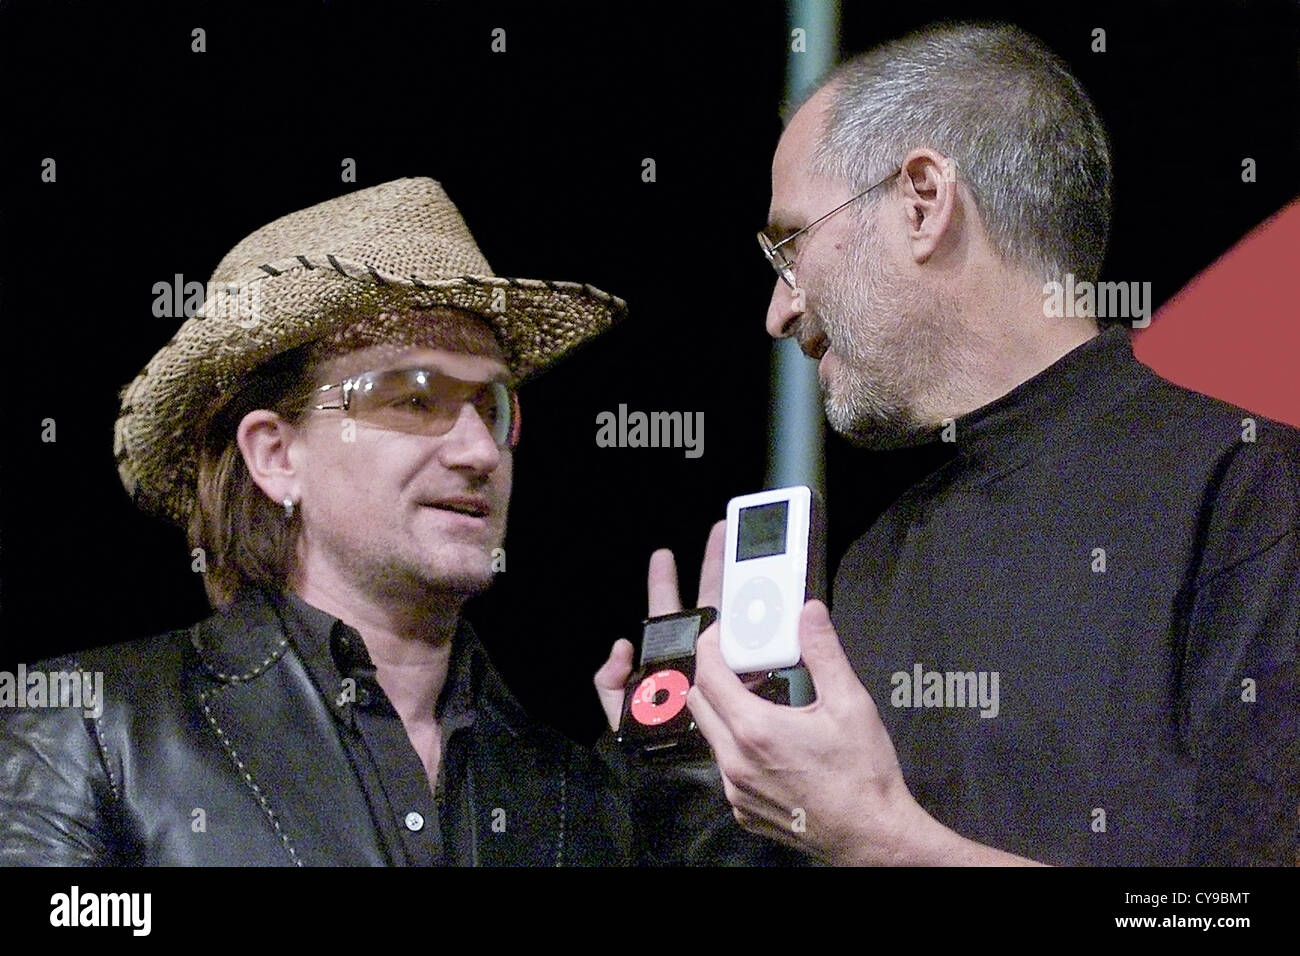 Apple CEO Steve Jobs (R) on stage with Bono from the band U2 to announce the U2 iPod, San Jose, CA, 2004. - Stock Image